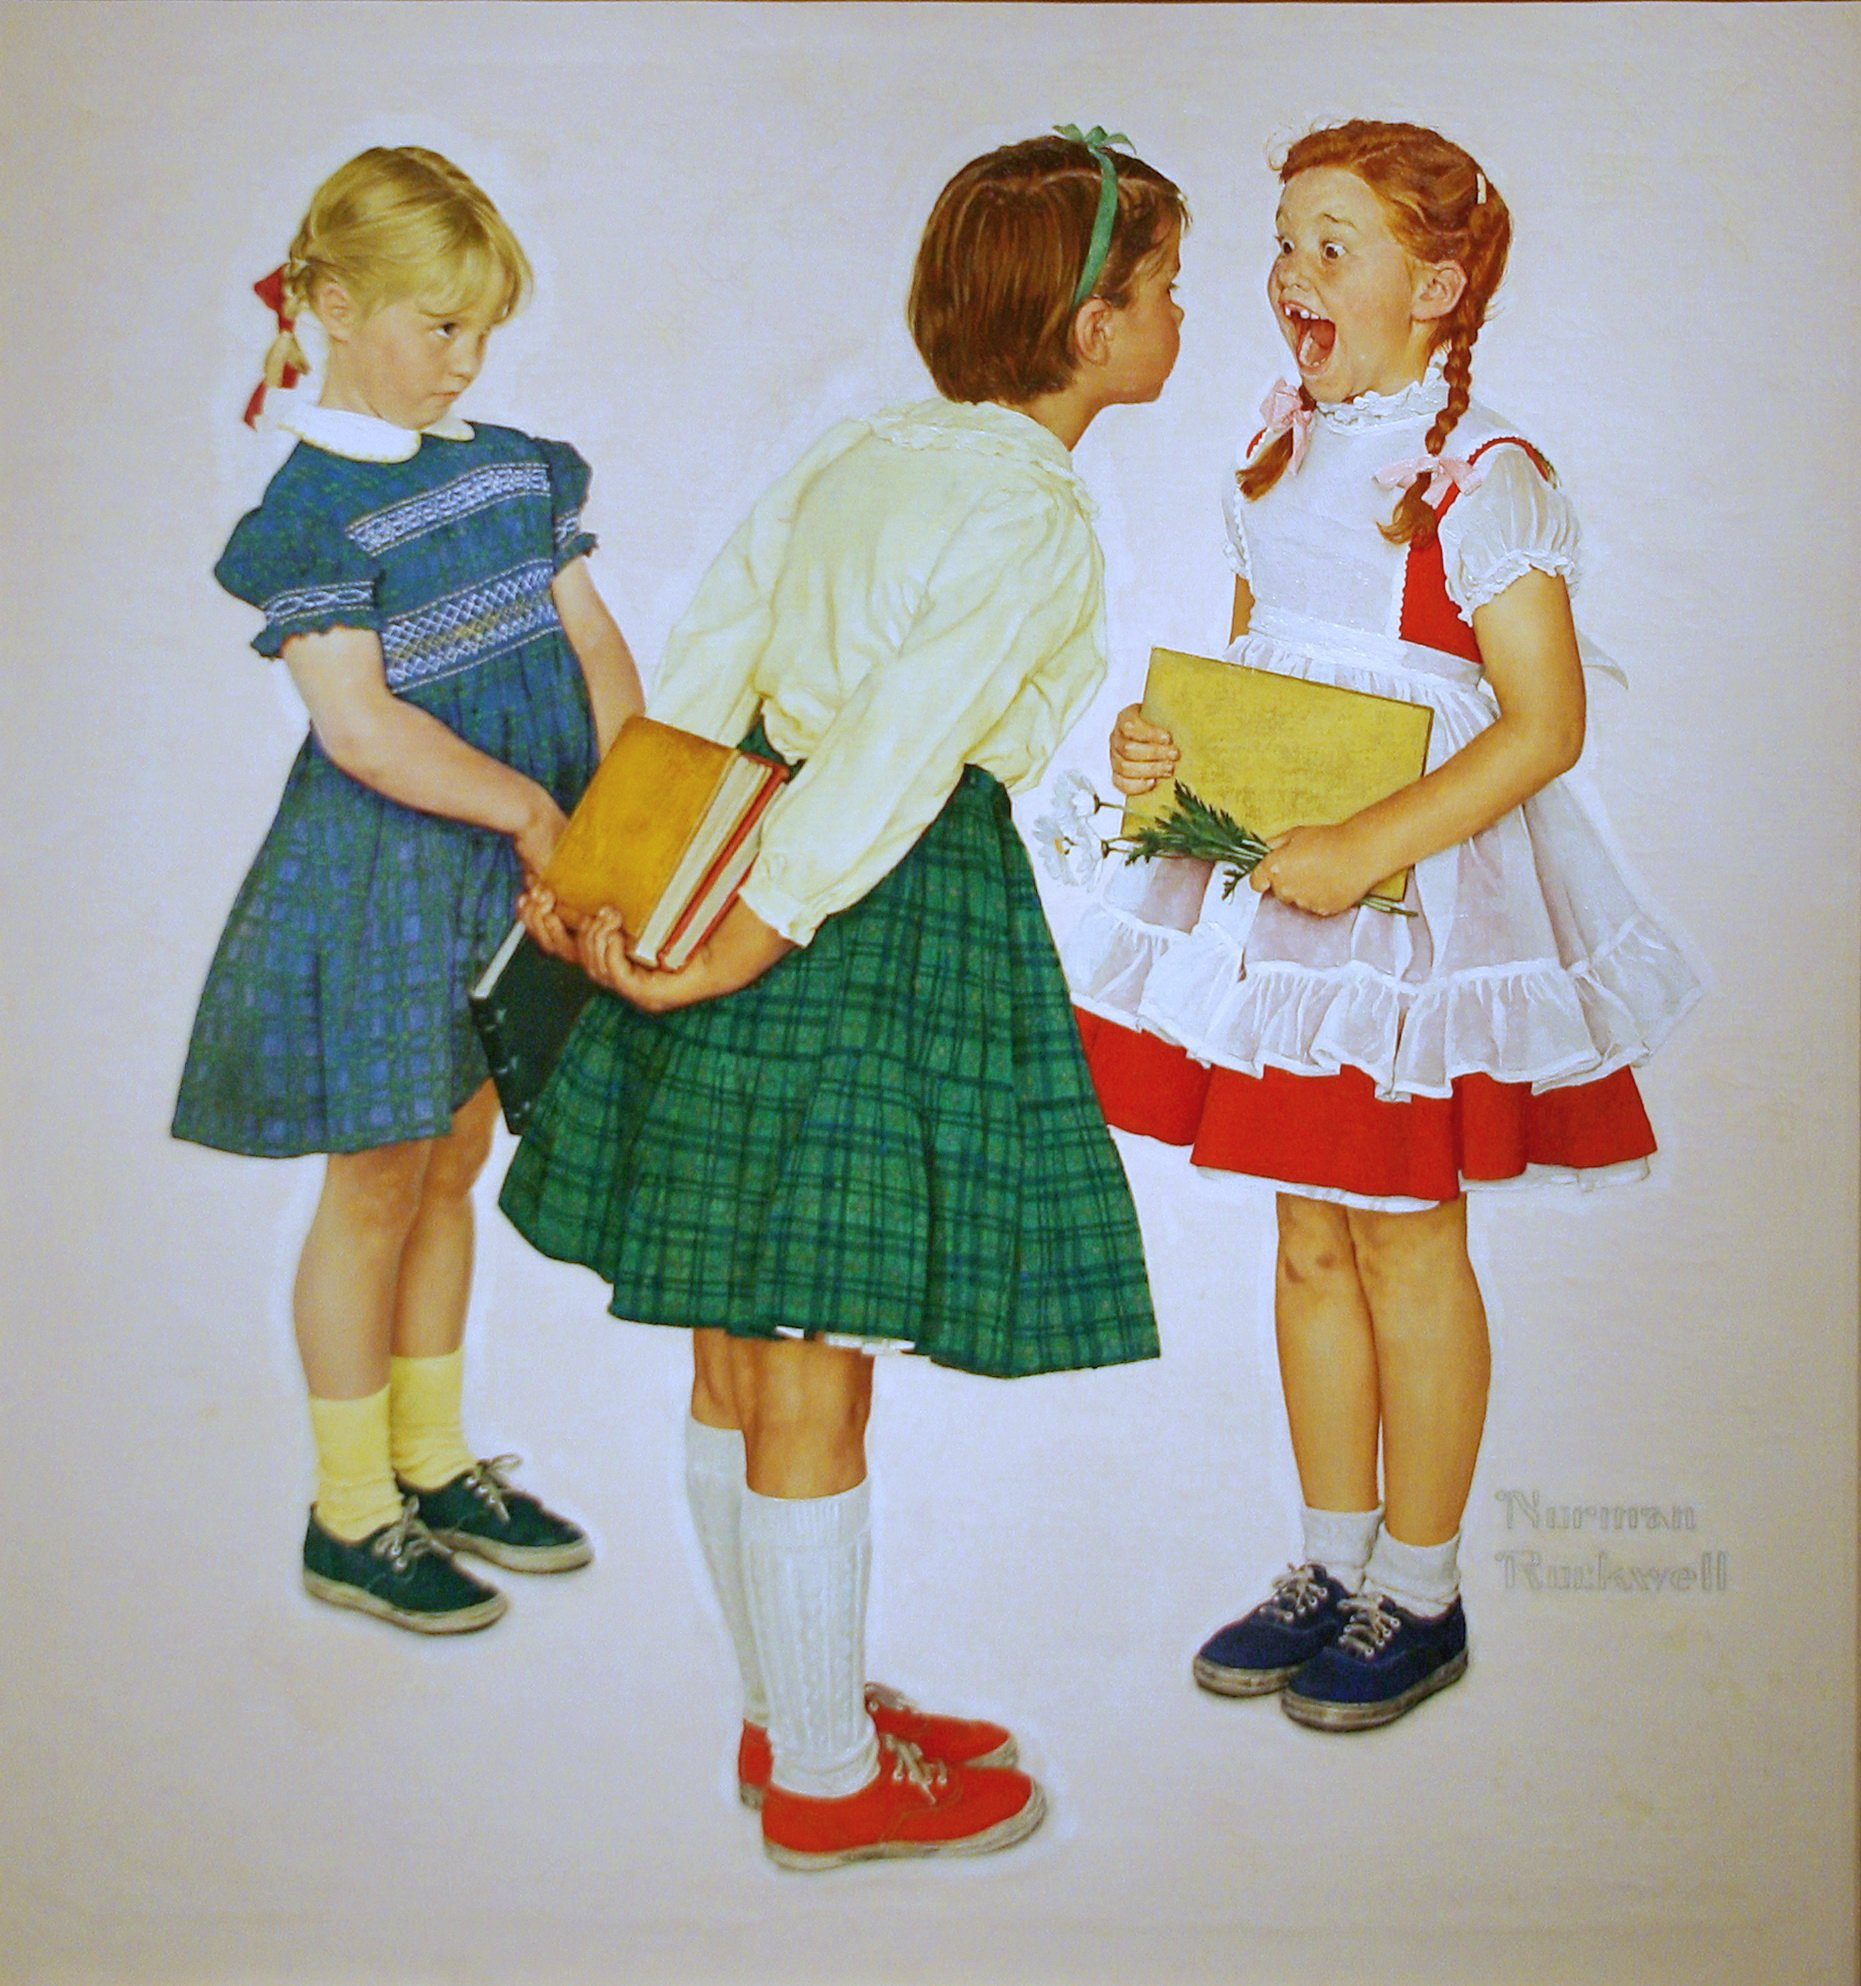 Famous Norman Rockwell painting of a redhead girl in two braids wearing a red A-line dress and white frilly apron with tennis shoes opens her mouth wide for another White girl in a green full skirt, yellow sweater, and tennies, bending forward to look at the redhead's missing front teeth.  A third blond girl looks on shyly.